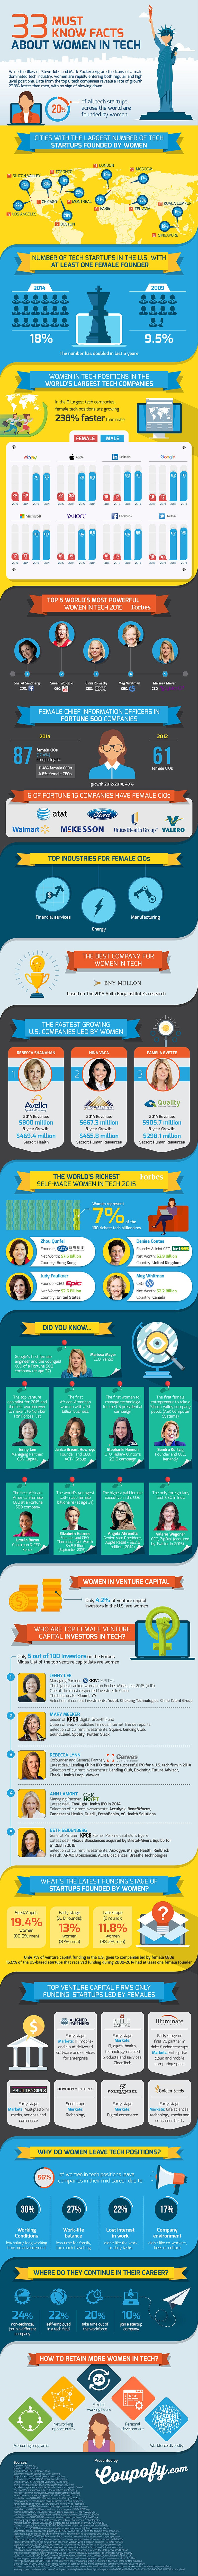 Must Known Facts About Women (Infographic)